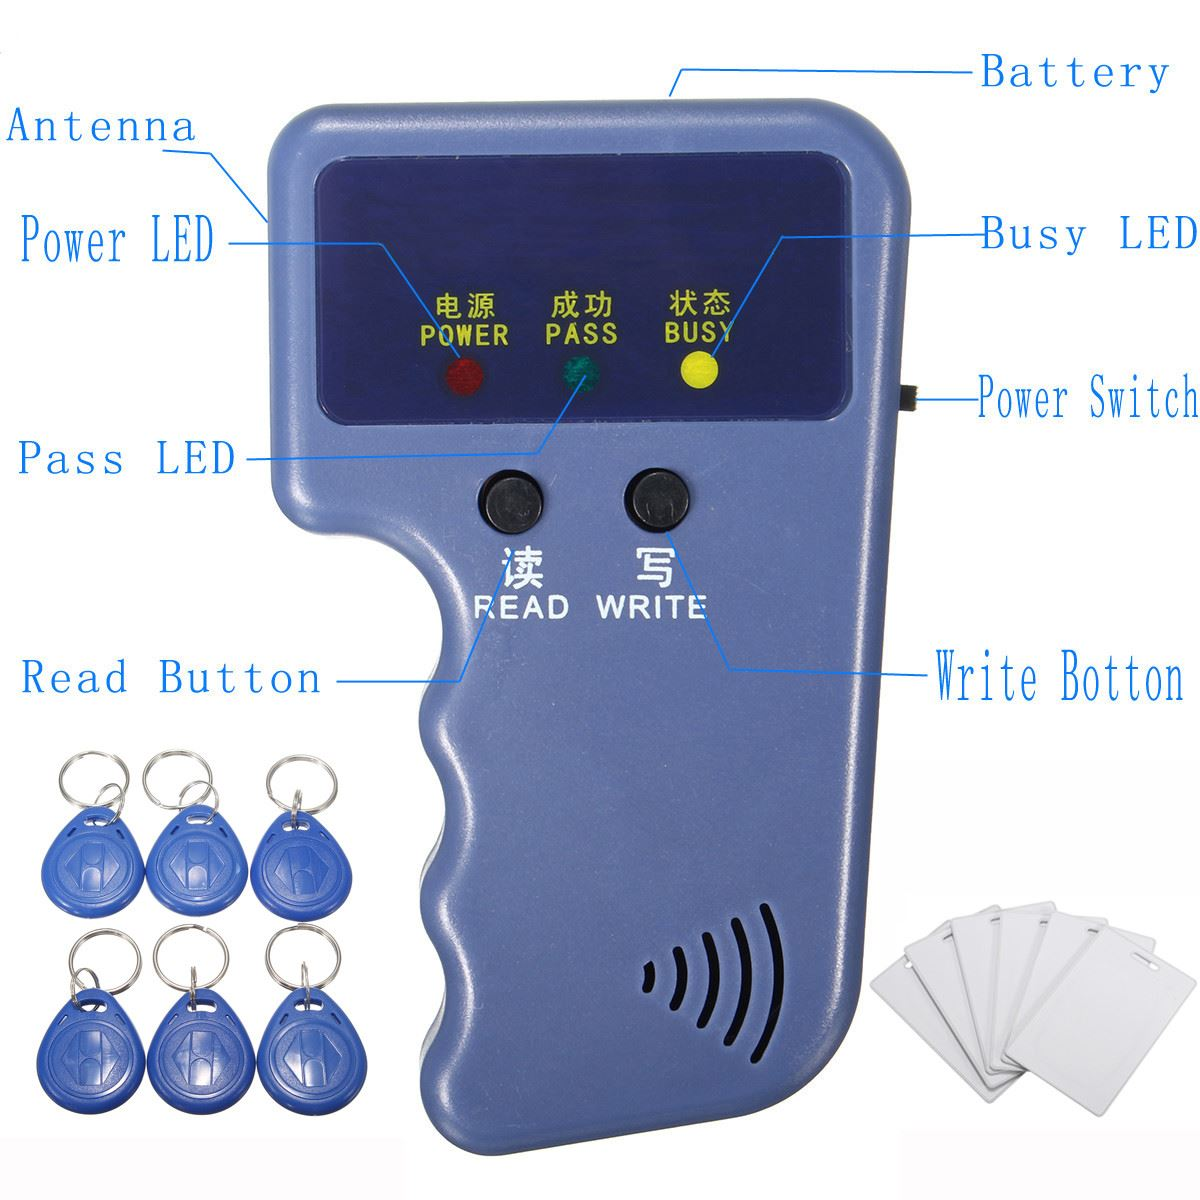 13Pcs 125Khz Handheld RFID ID Card Copier Reader Writer Duplicator  Programmer with 6 pcs Writable Tags and 6 pcs cards